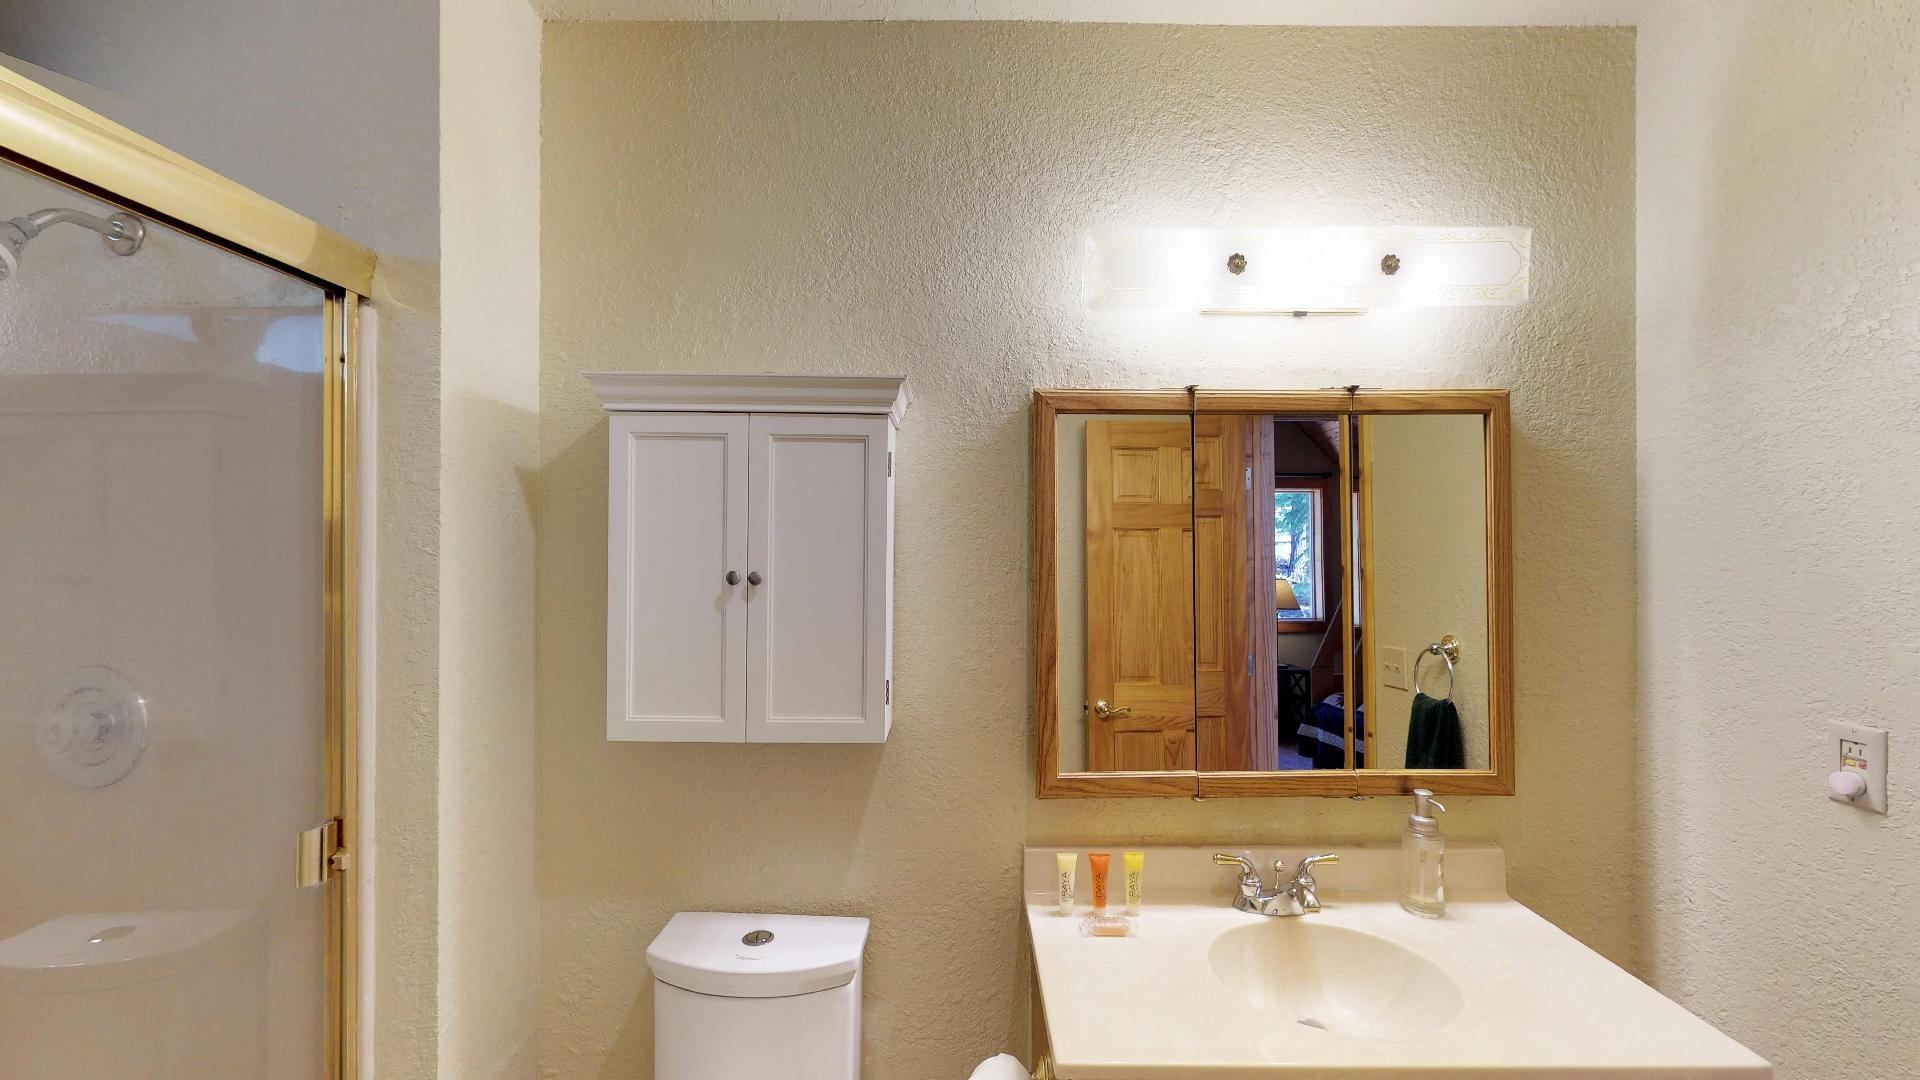 Vanity and Extra Cabinet Space in the Bathroom